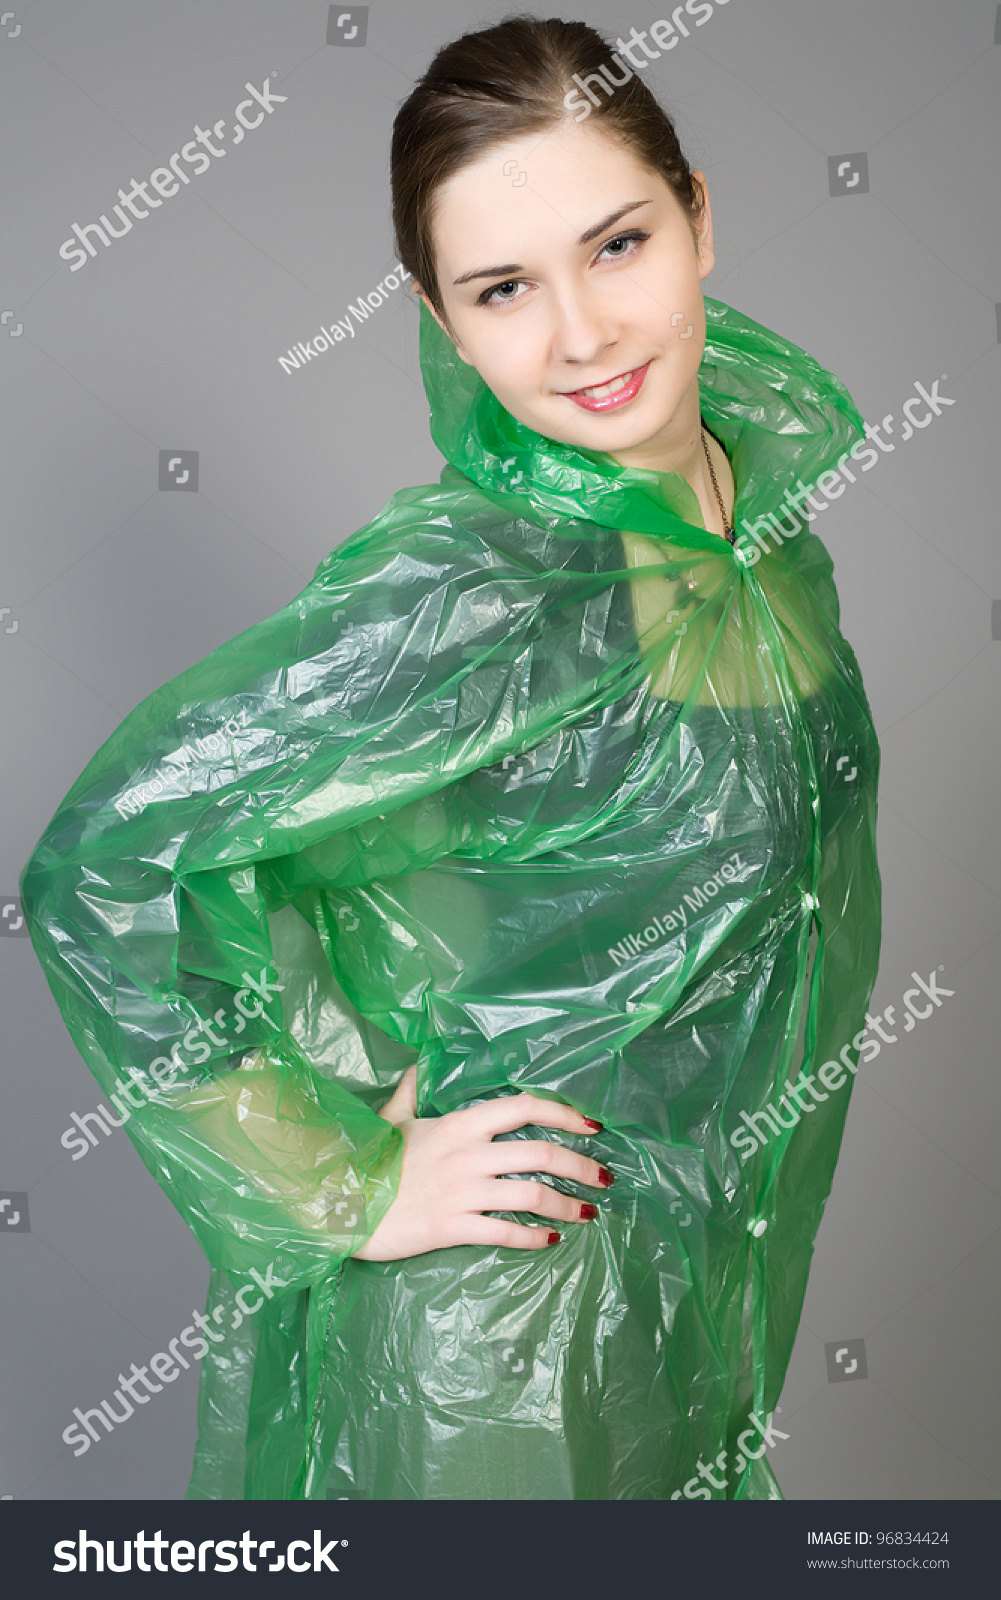 Young Woman Green Rain Raincoat Stock Photo 96834424 - Shutterstock